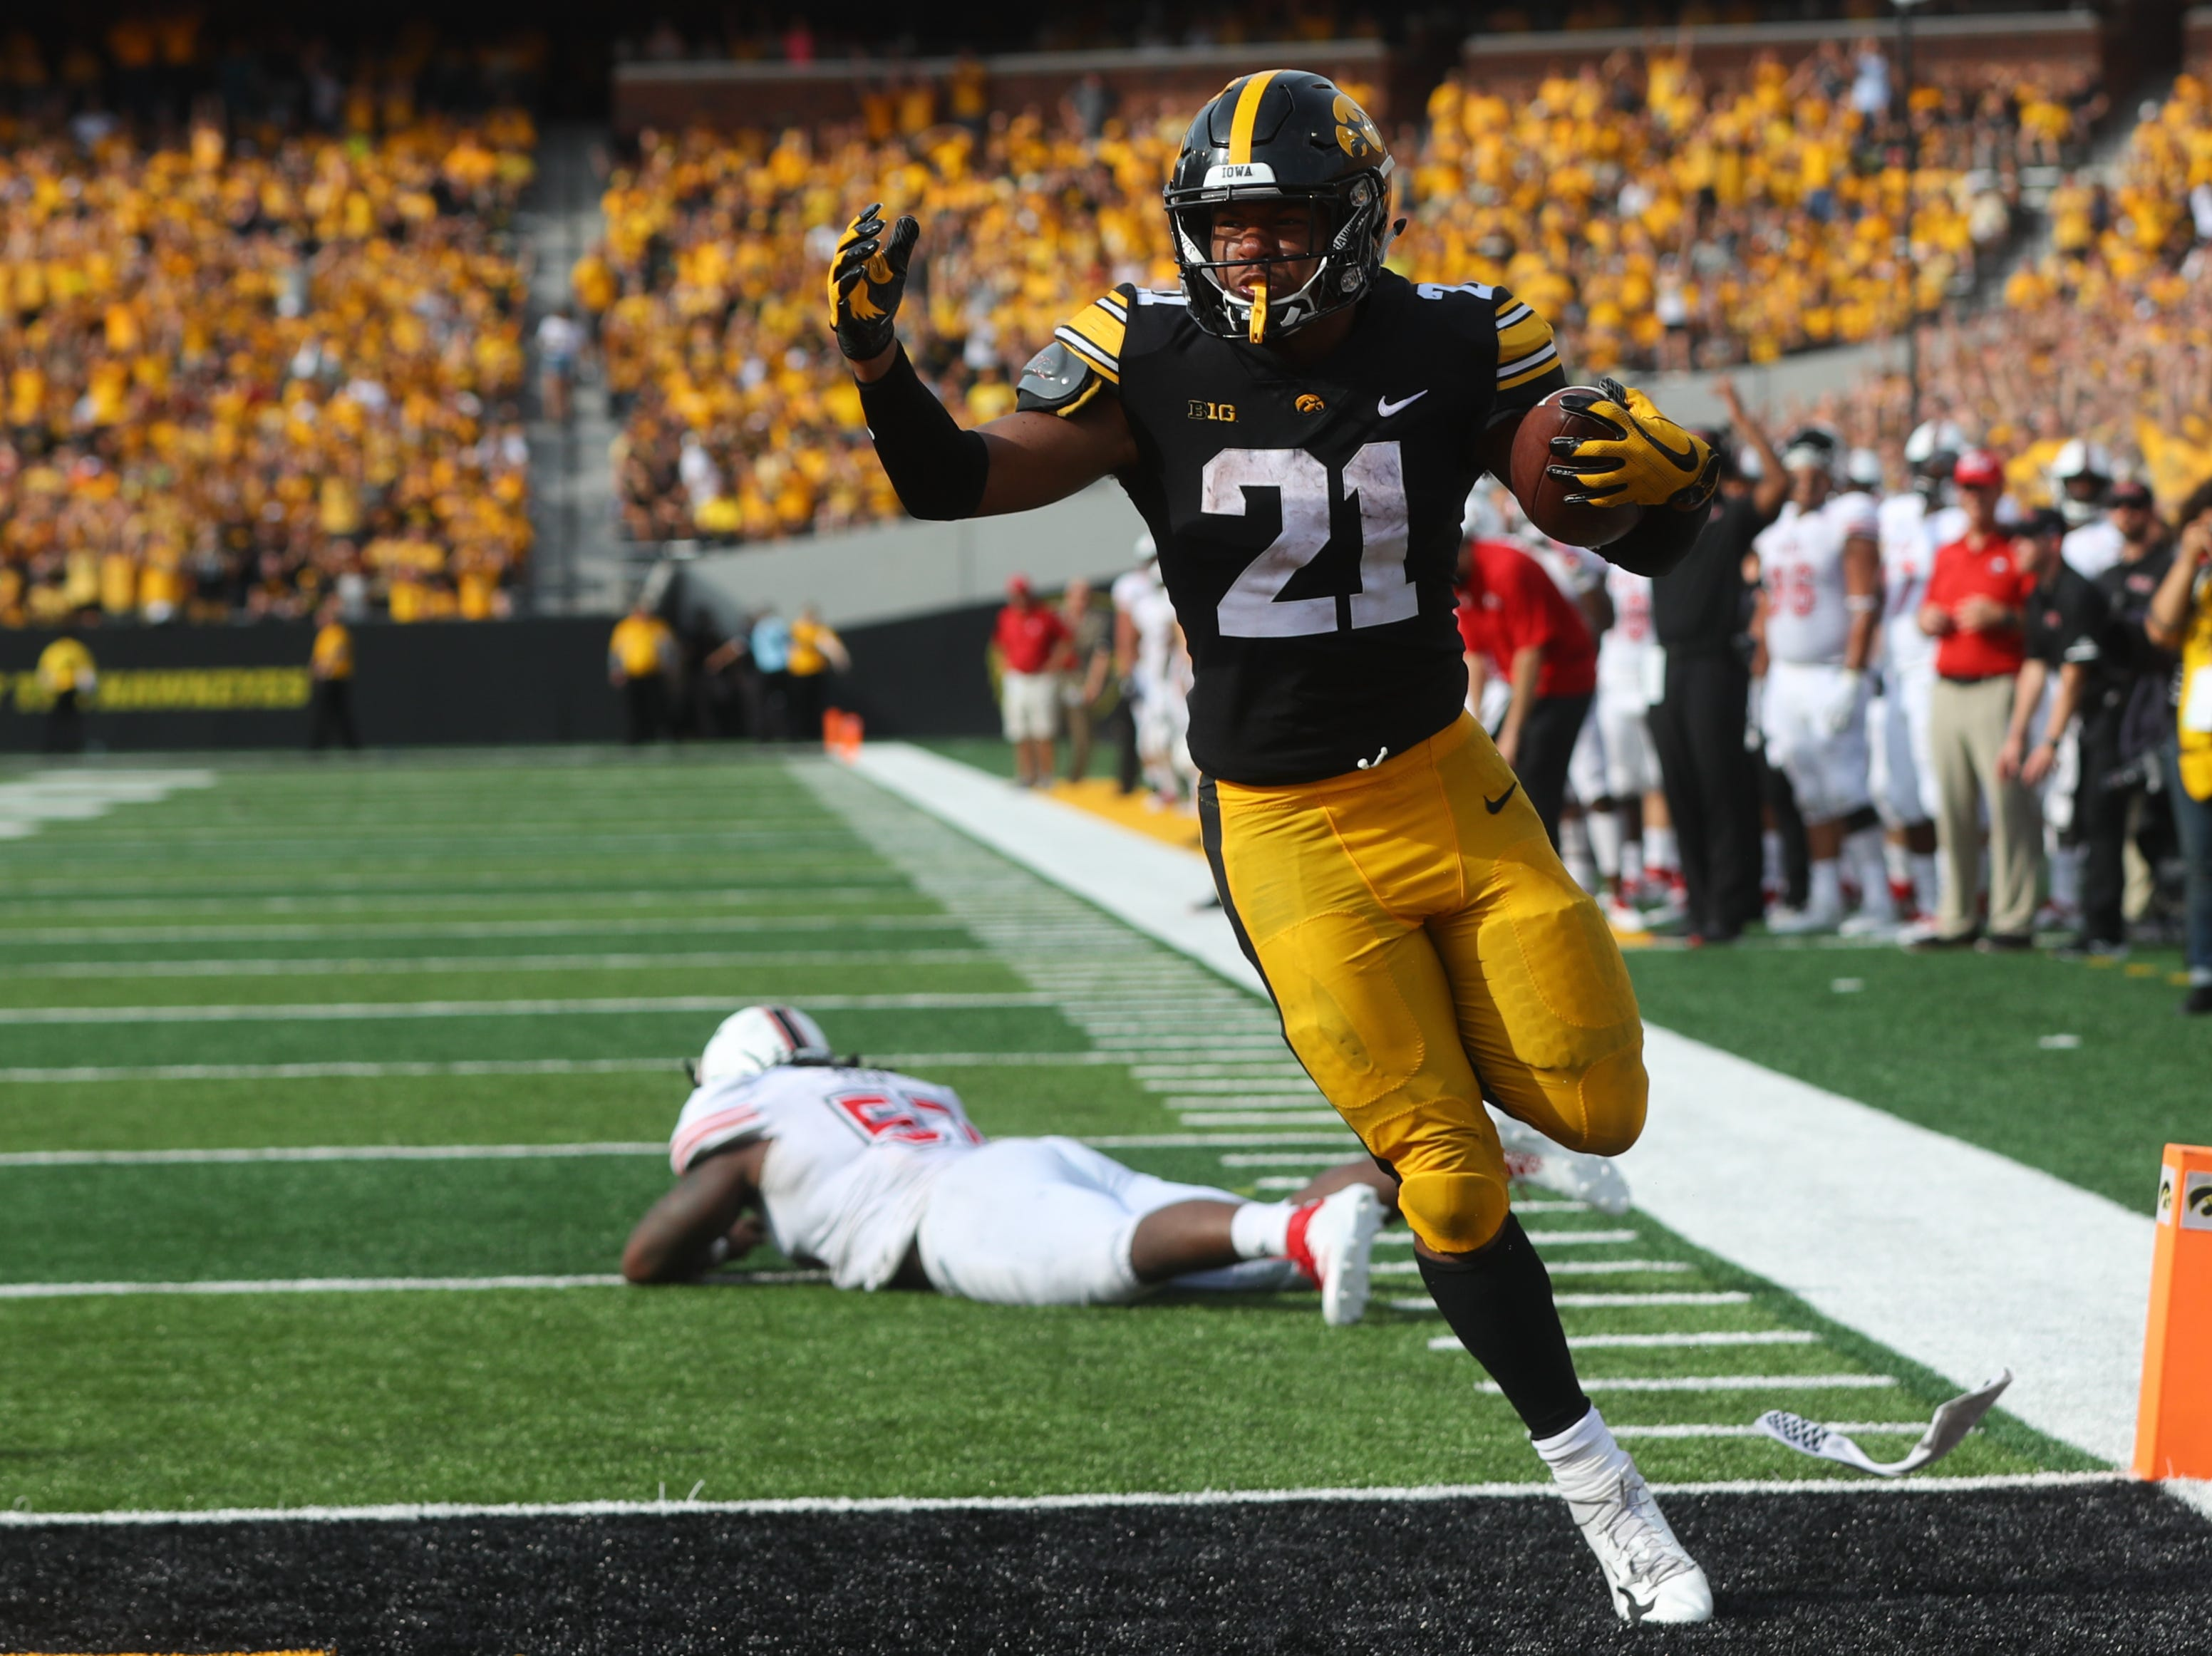 Iowa's Ivory Kelly-Martin runs in for a touchdown during the Hawkeyes' game against Northern Illinois at Kinnick Stadium on Satuday, Sept. 1, 2018.